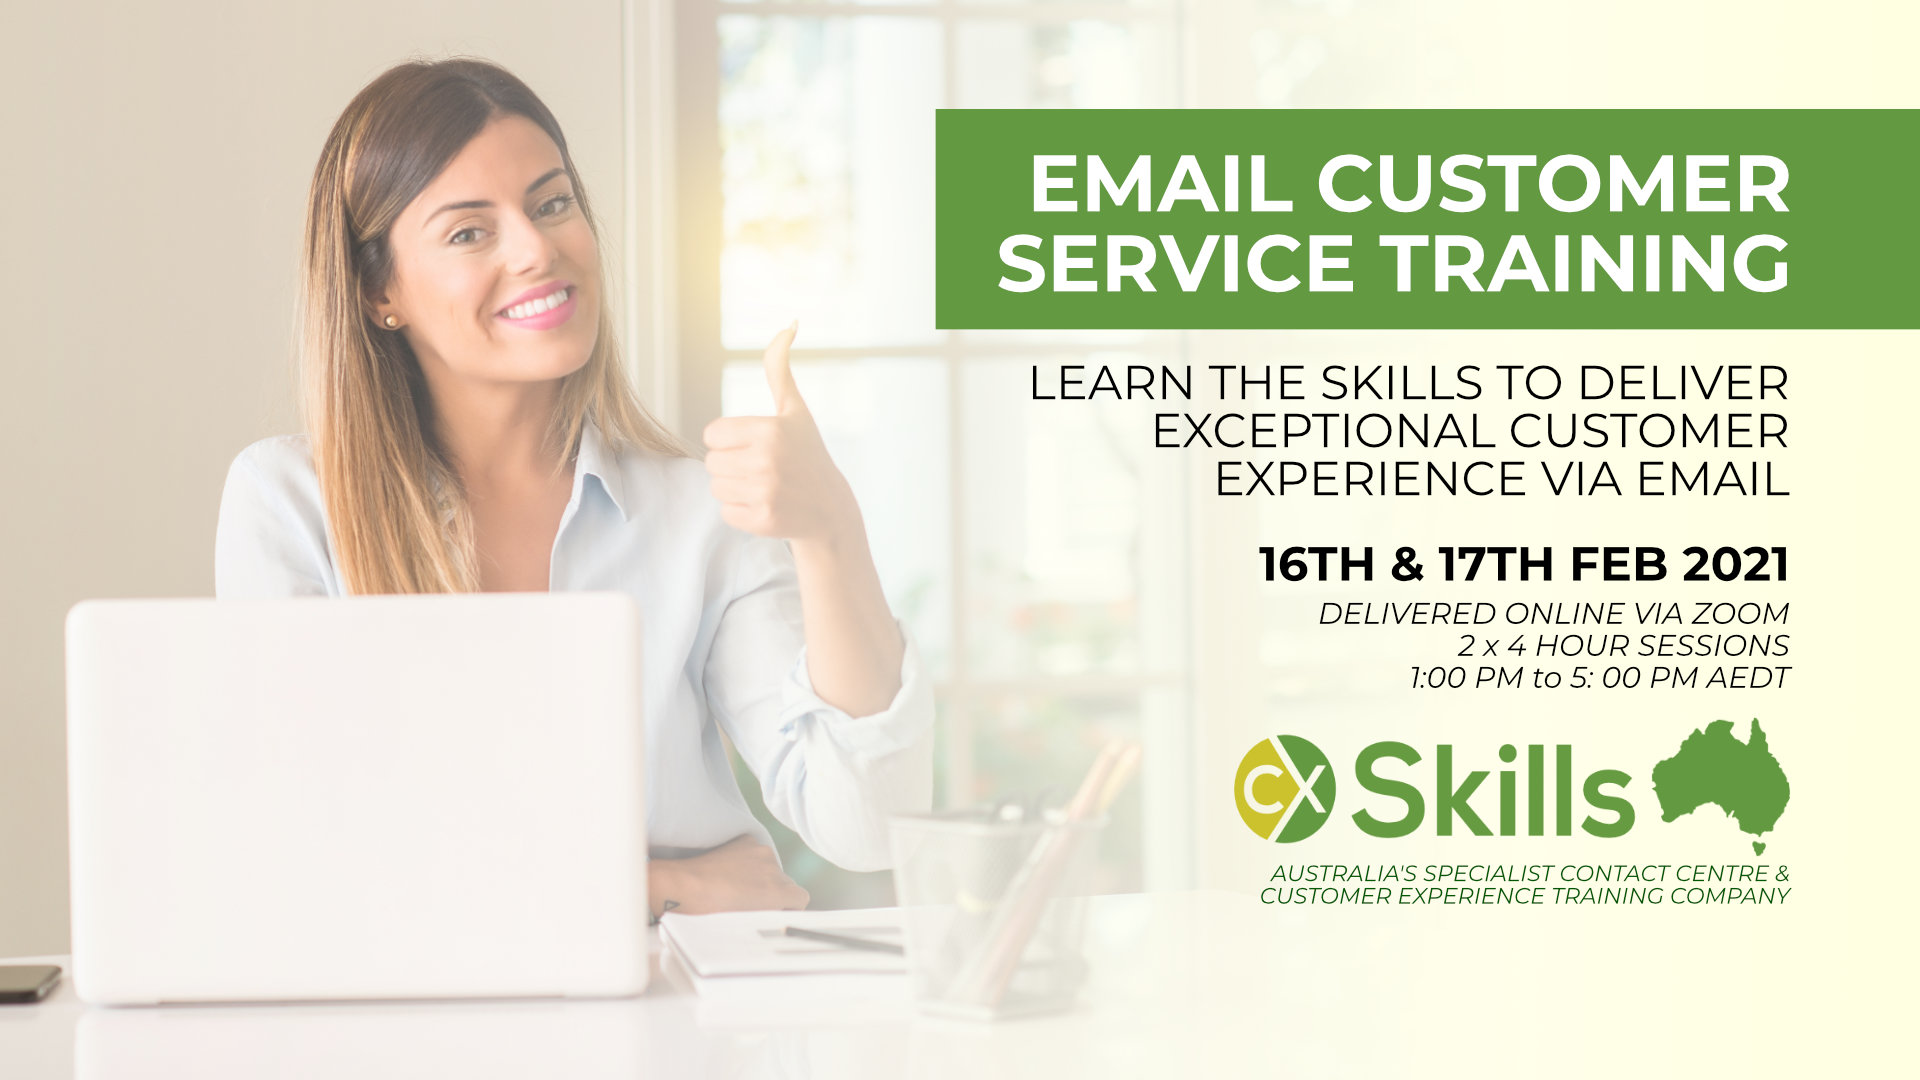 Email Customer Service training course February 2021